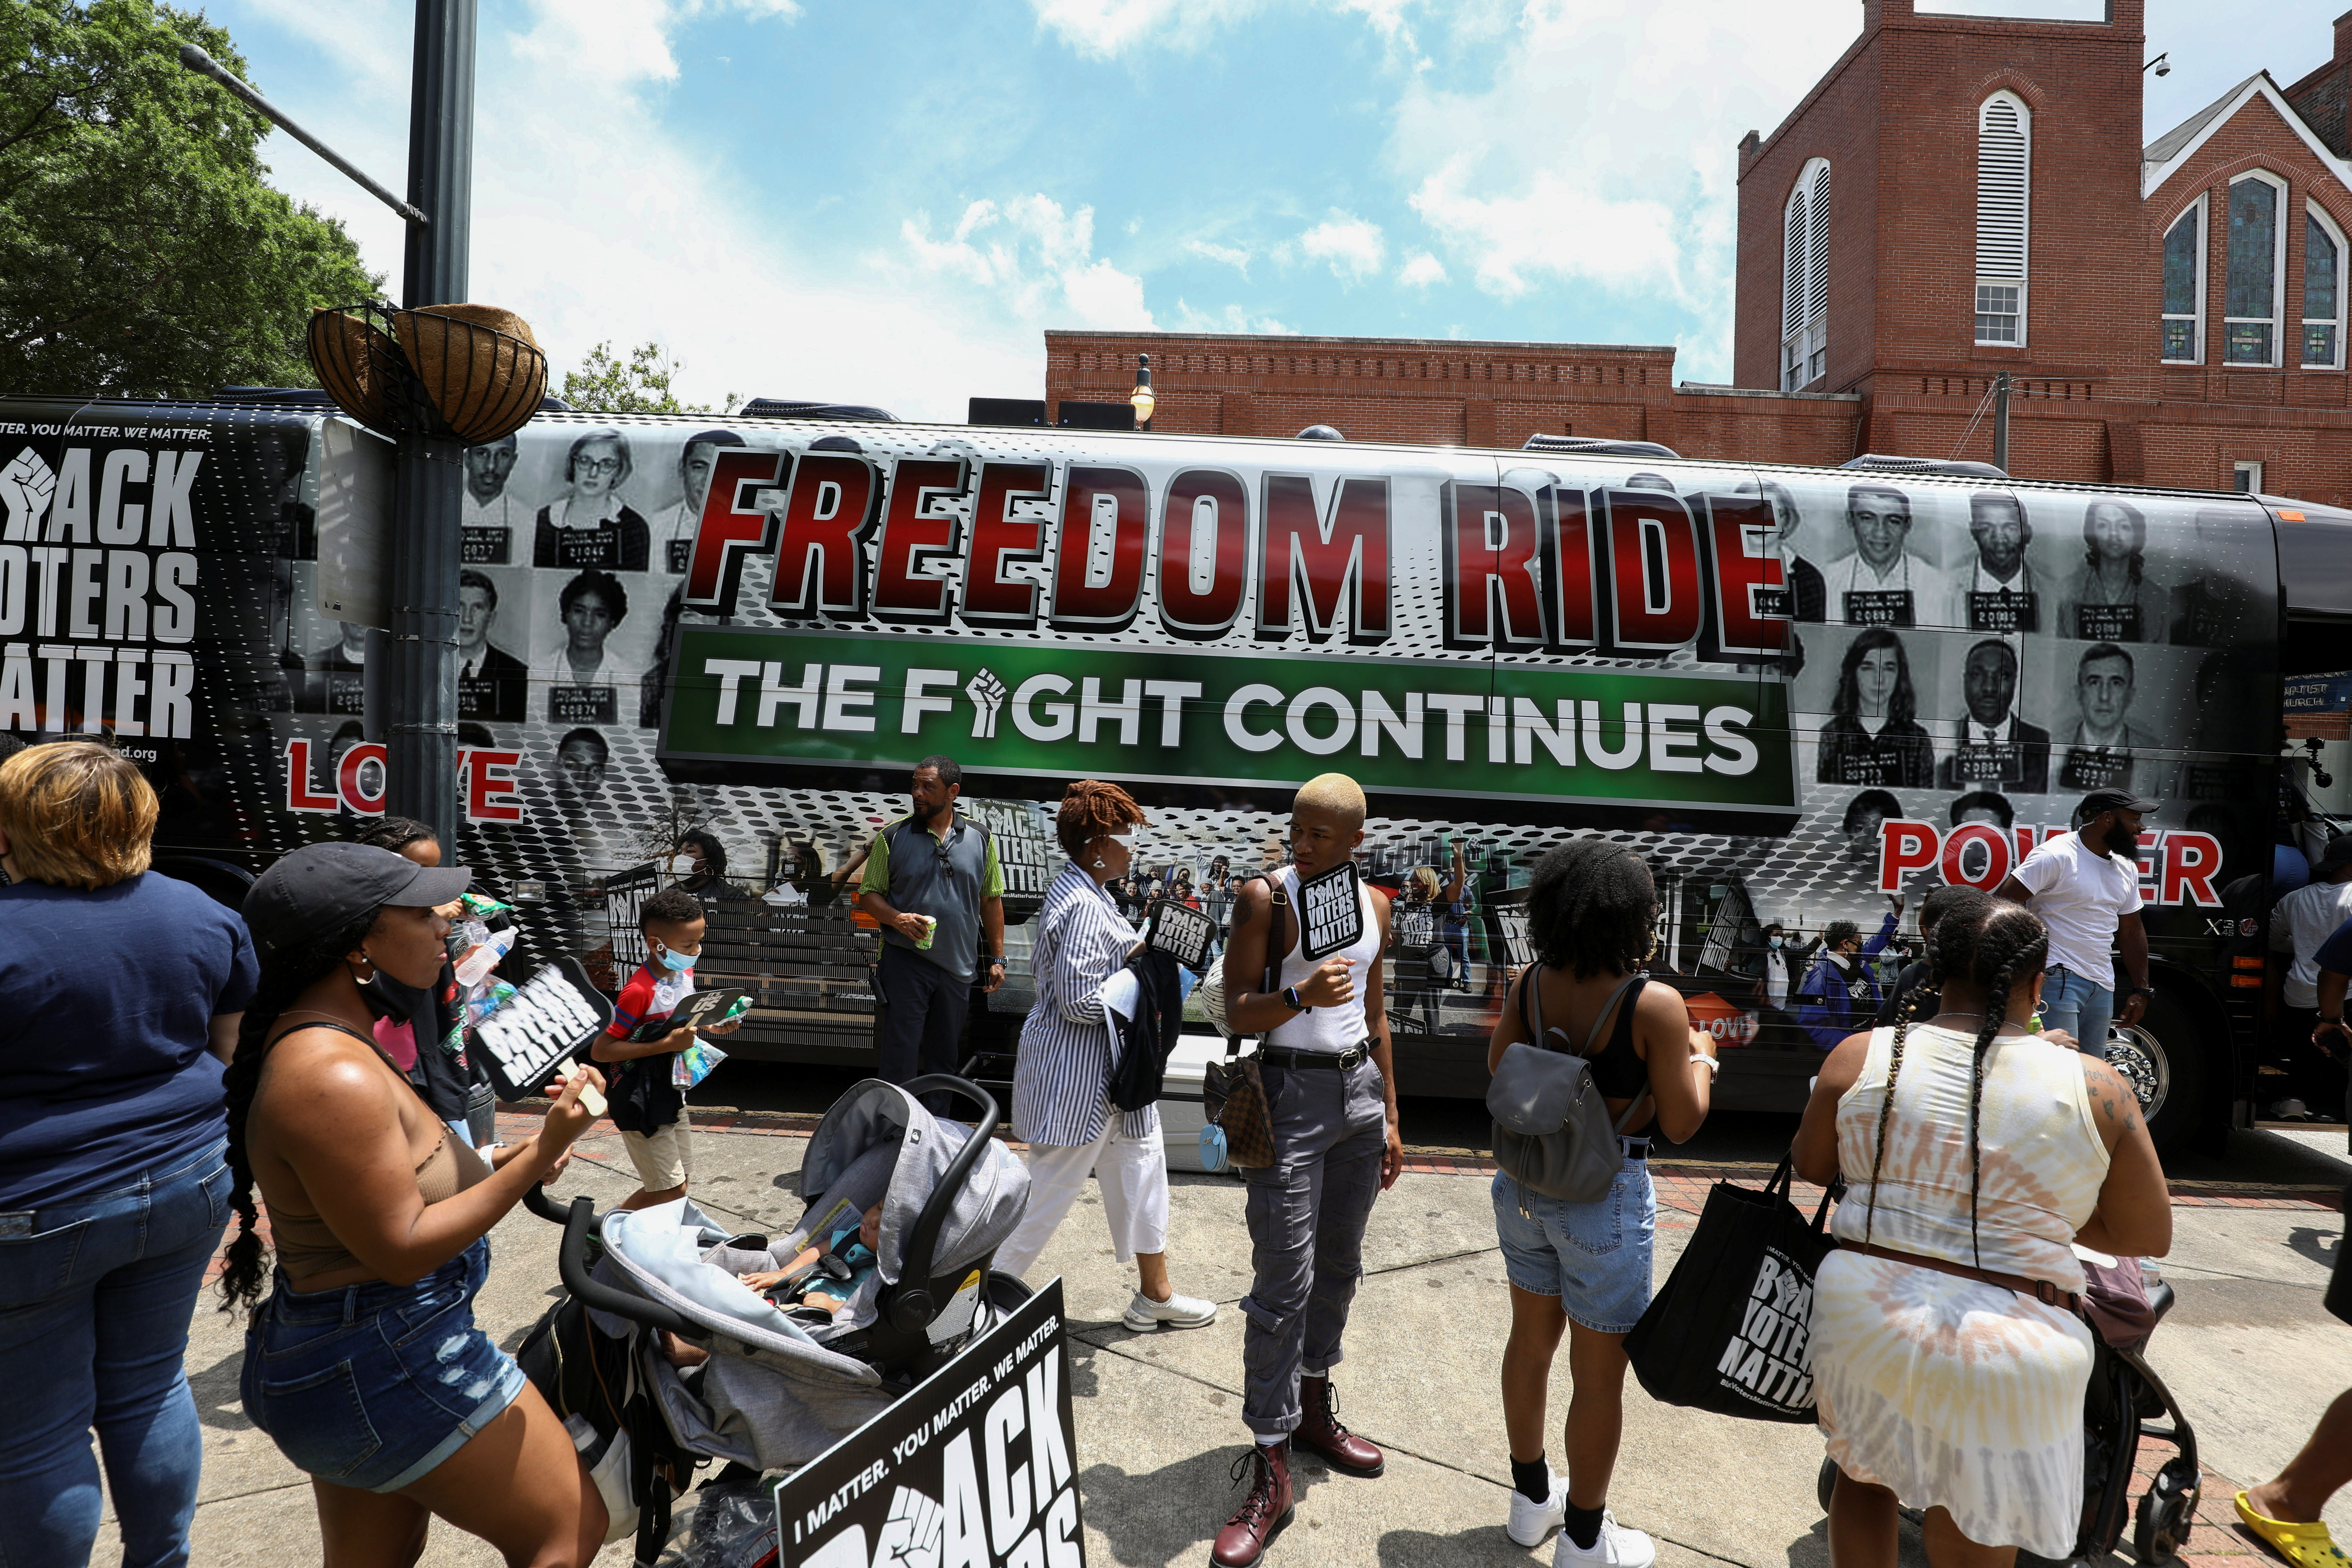 People gather in front of one of the tour buses during a stop on the Freedom Ride For Voting Rights at Ebenezer Baptist Church in Atlanta, Georgia, U.S. June 21, 2021.  REUTERS/Dustin Chambers